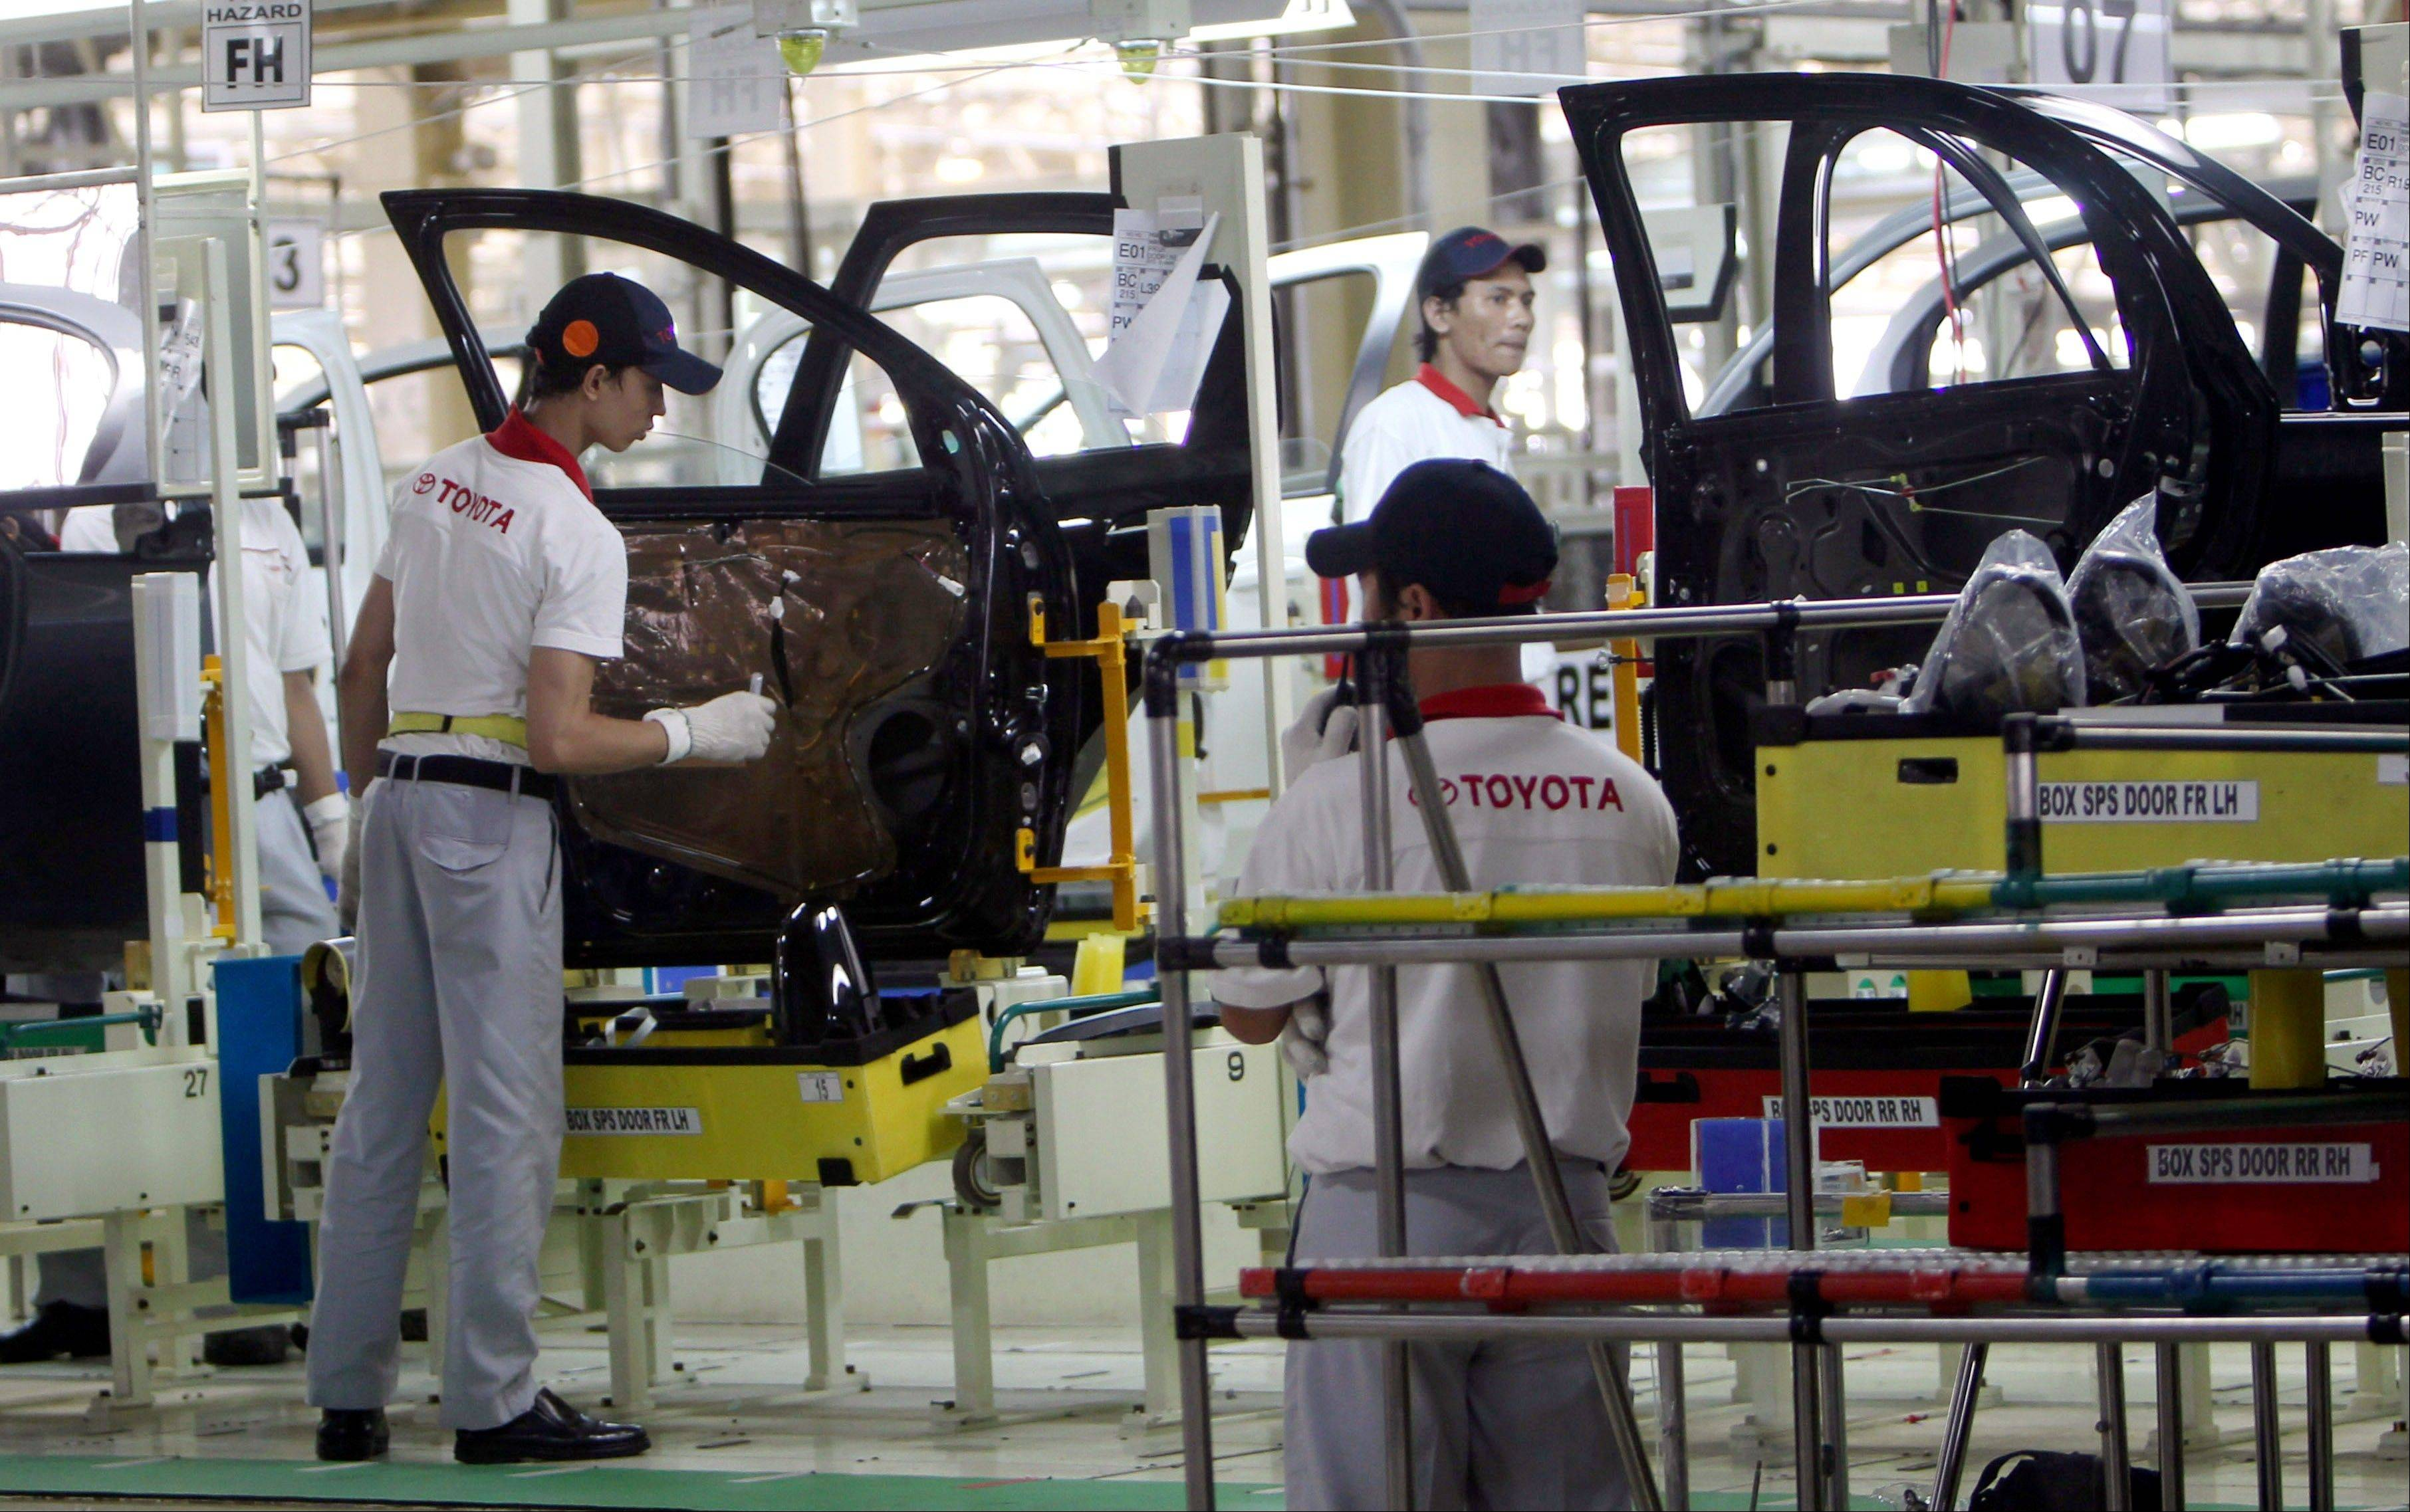 Workers assemble passenger cars Friday at the new Toyota plant in Karawang, West Java, Indonesia. Toyota officially opened their second manufacturing plant in the country to increase their total production capacity to more than 200,000 cars a year by 2014.